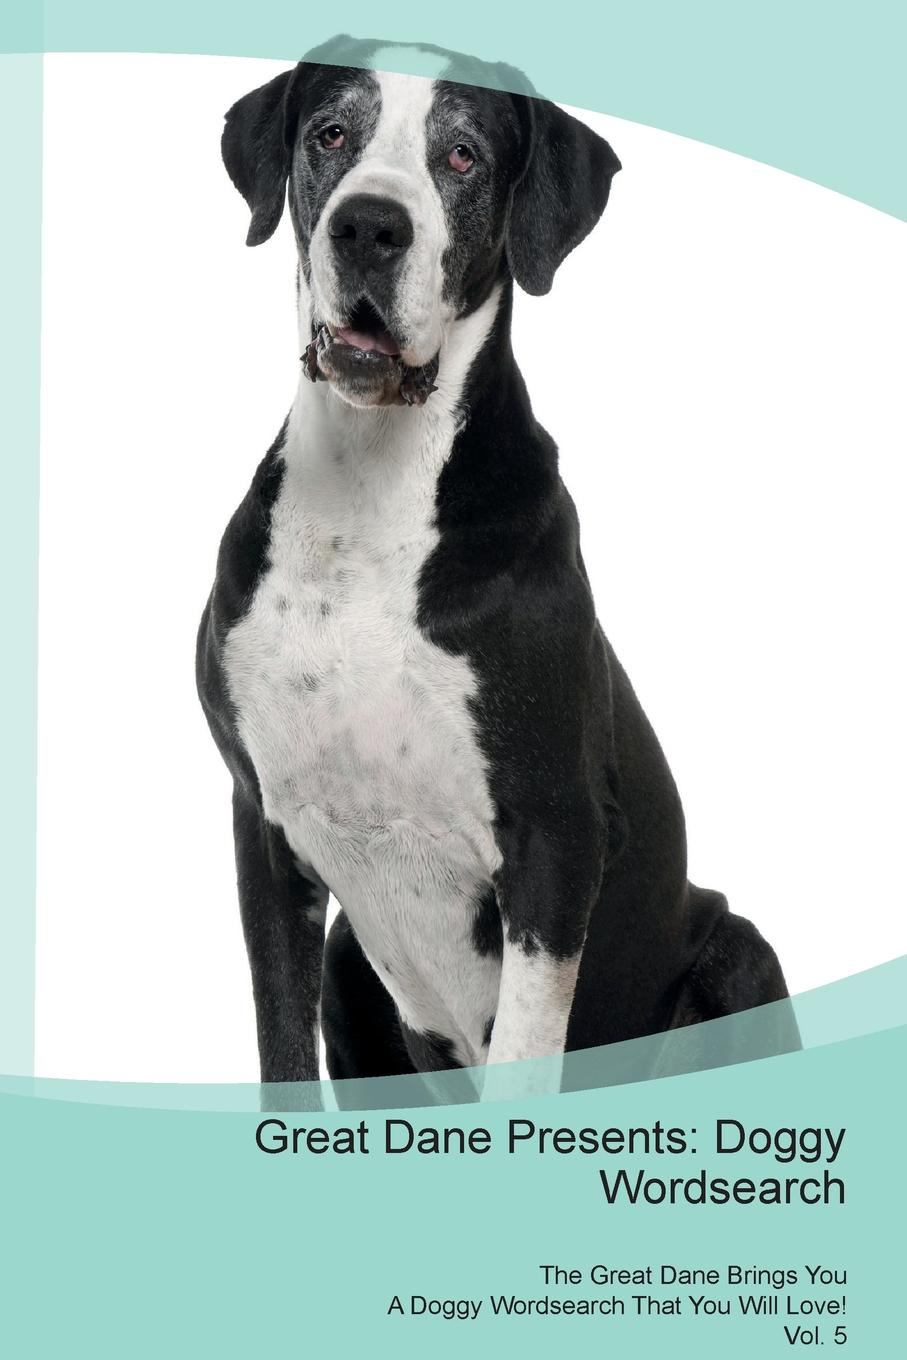 Doggy Puzzles Great Dane Presents. Wordsearch The Brings You A That Will Love! Vol. 5